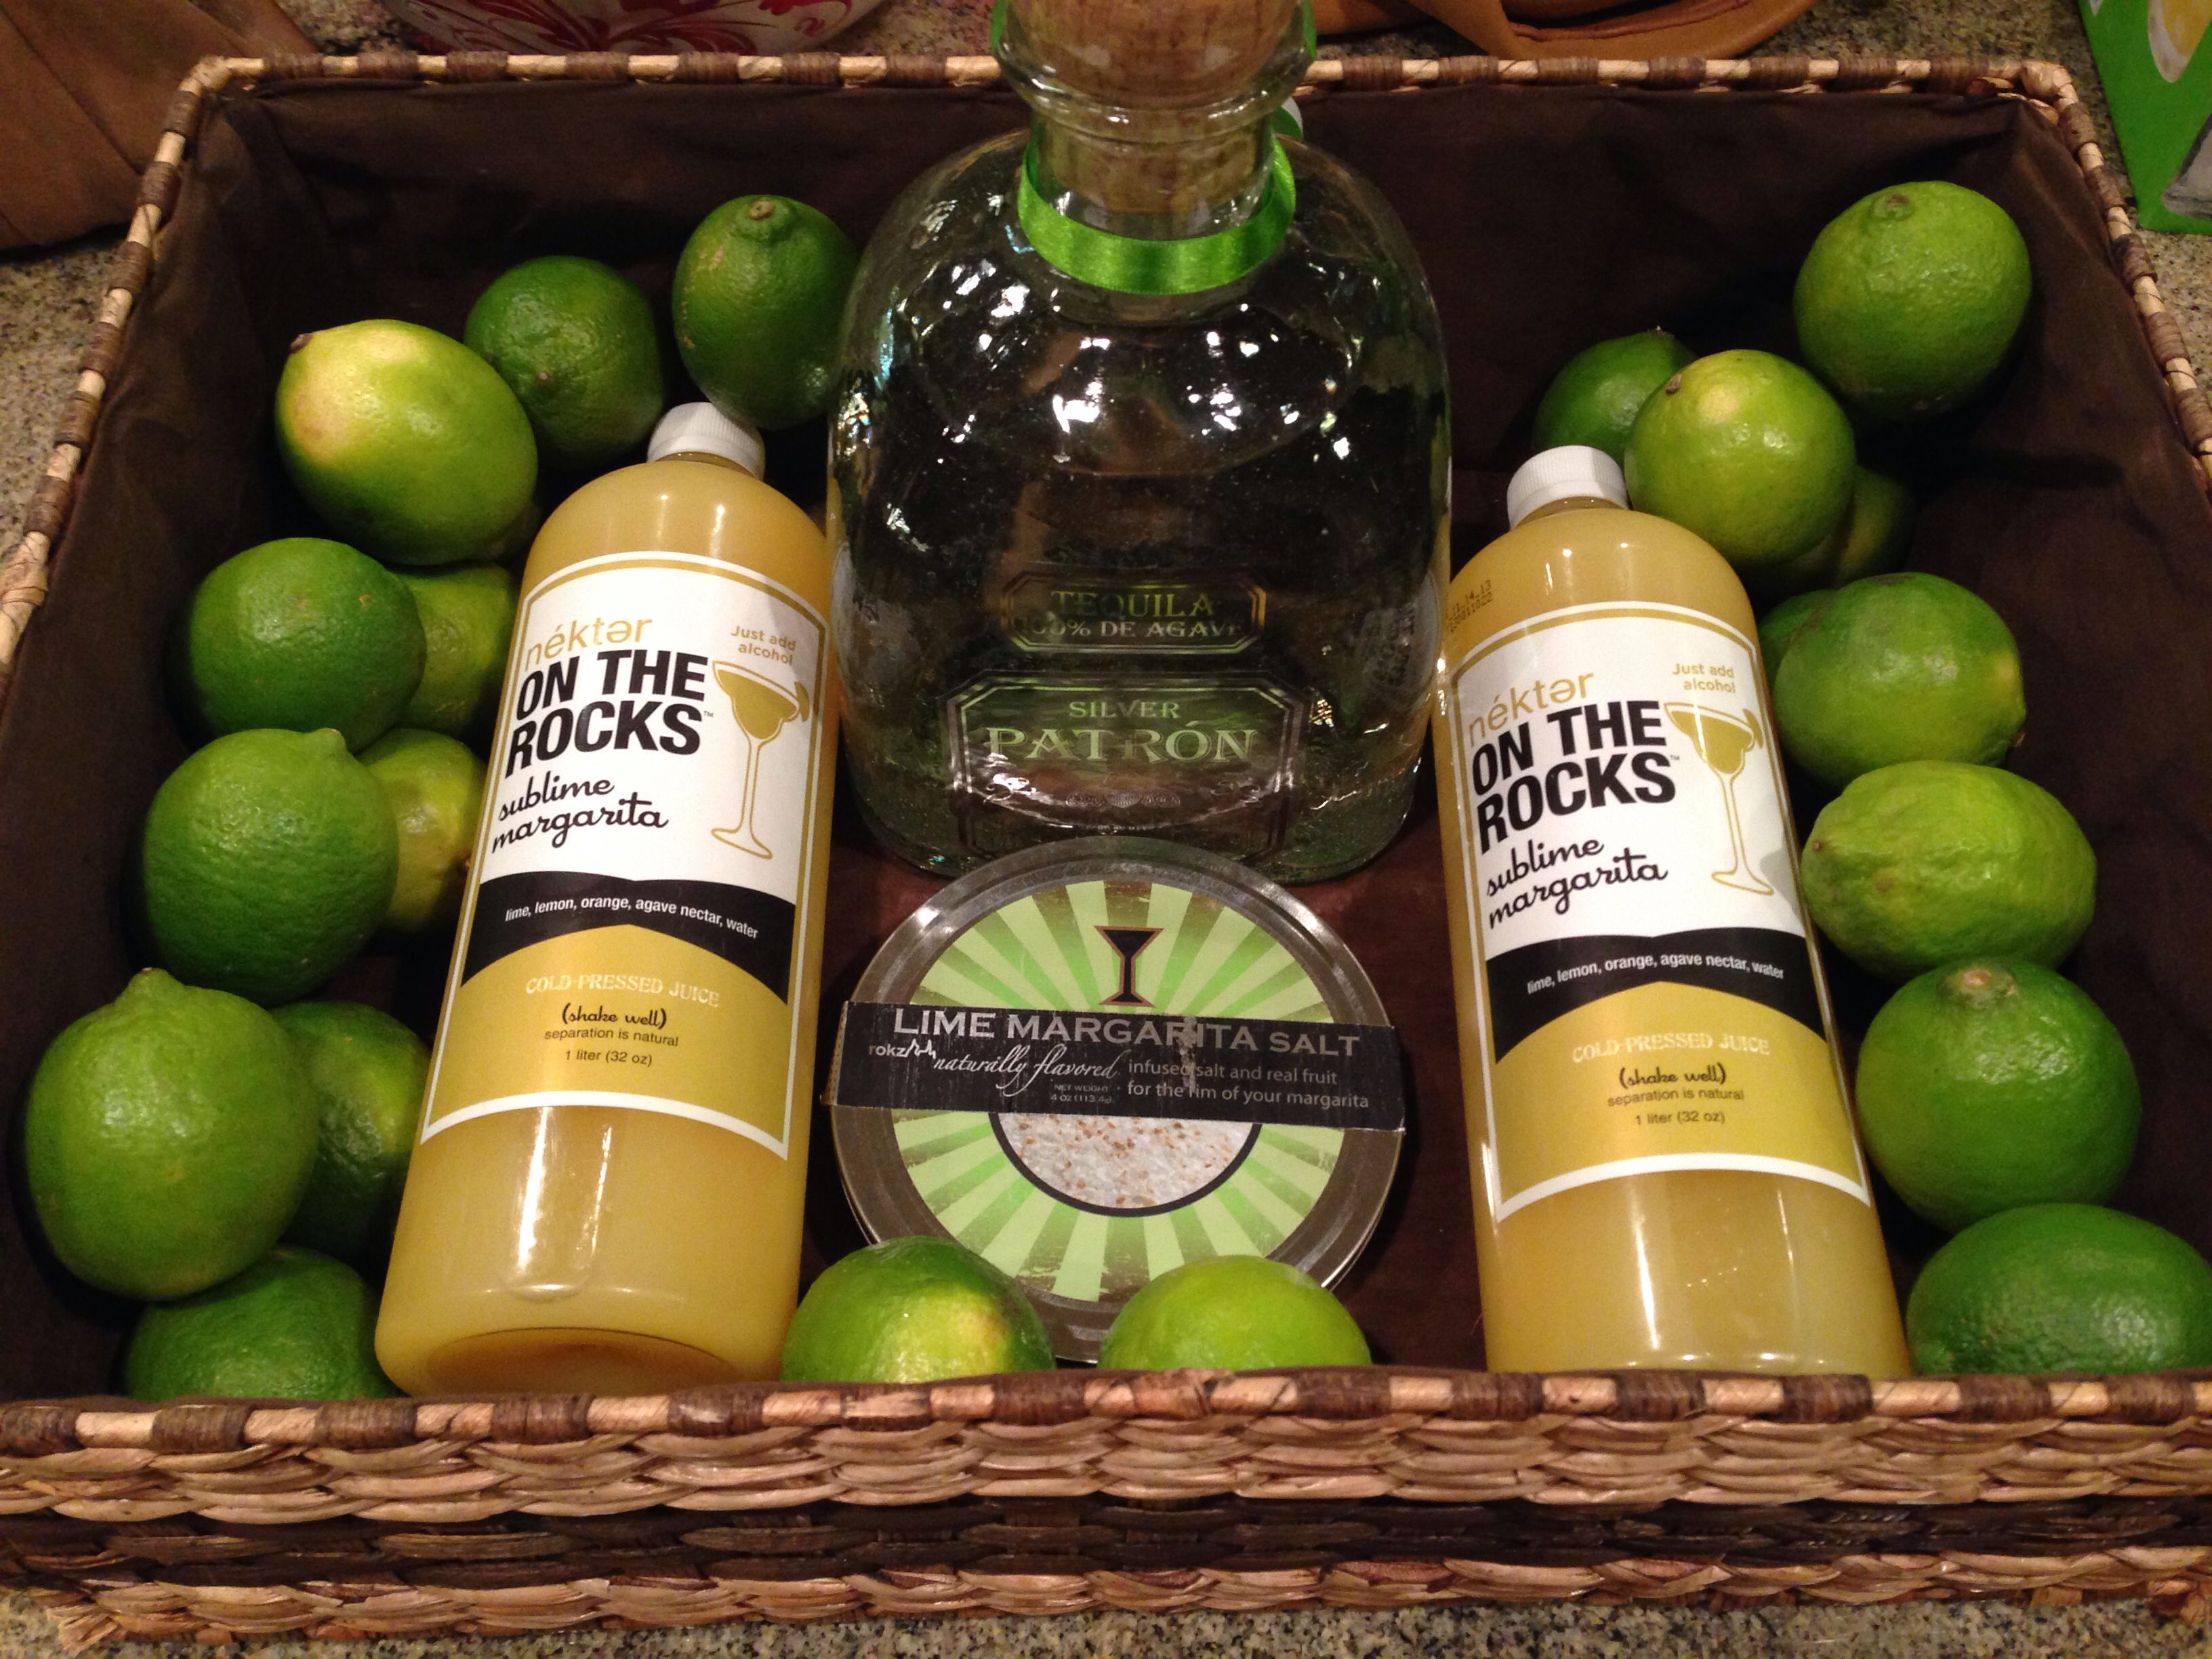 Skinny margarita gift basket - nekter juice, patron tequila, salt and lime!